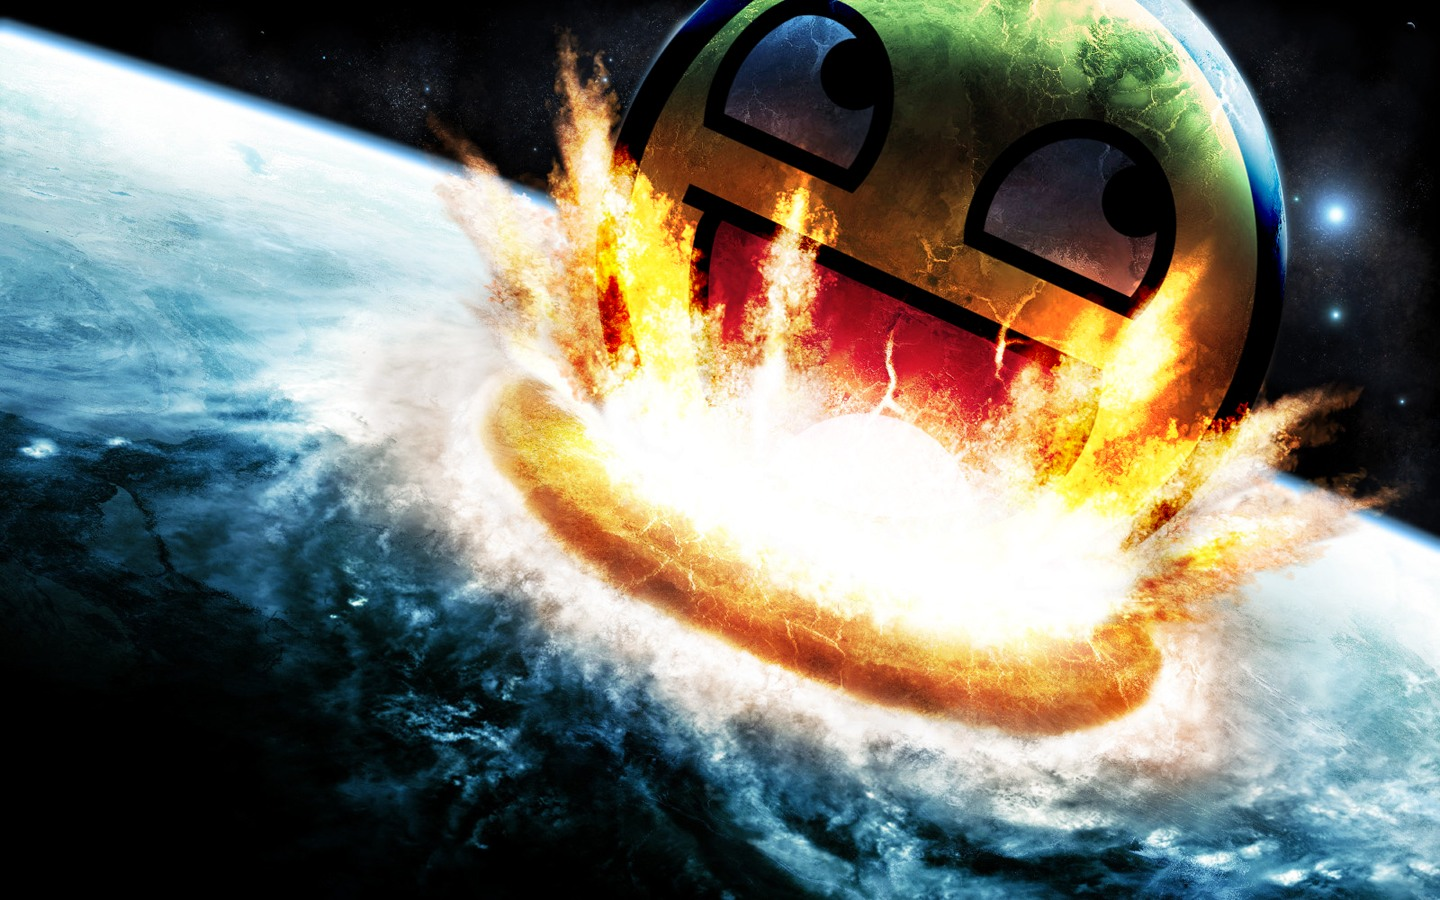 Download Smiley Epic Wallpaper 1440x900 Full HD Wallpapers 1440x900